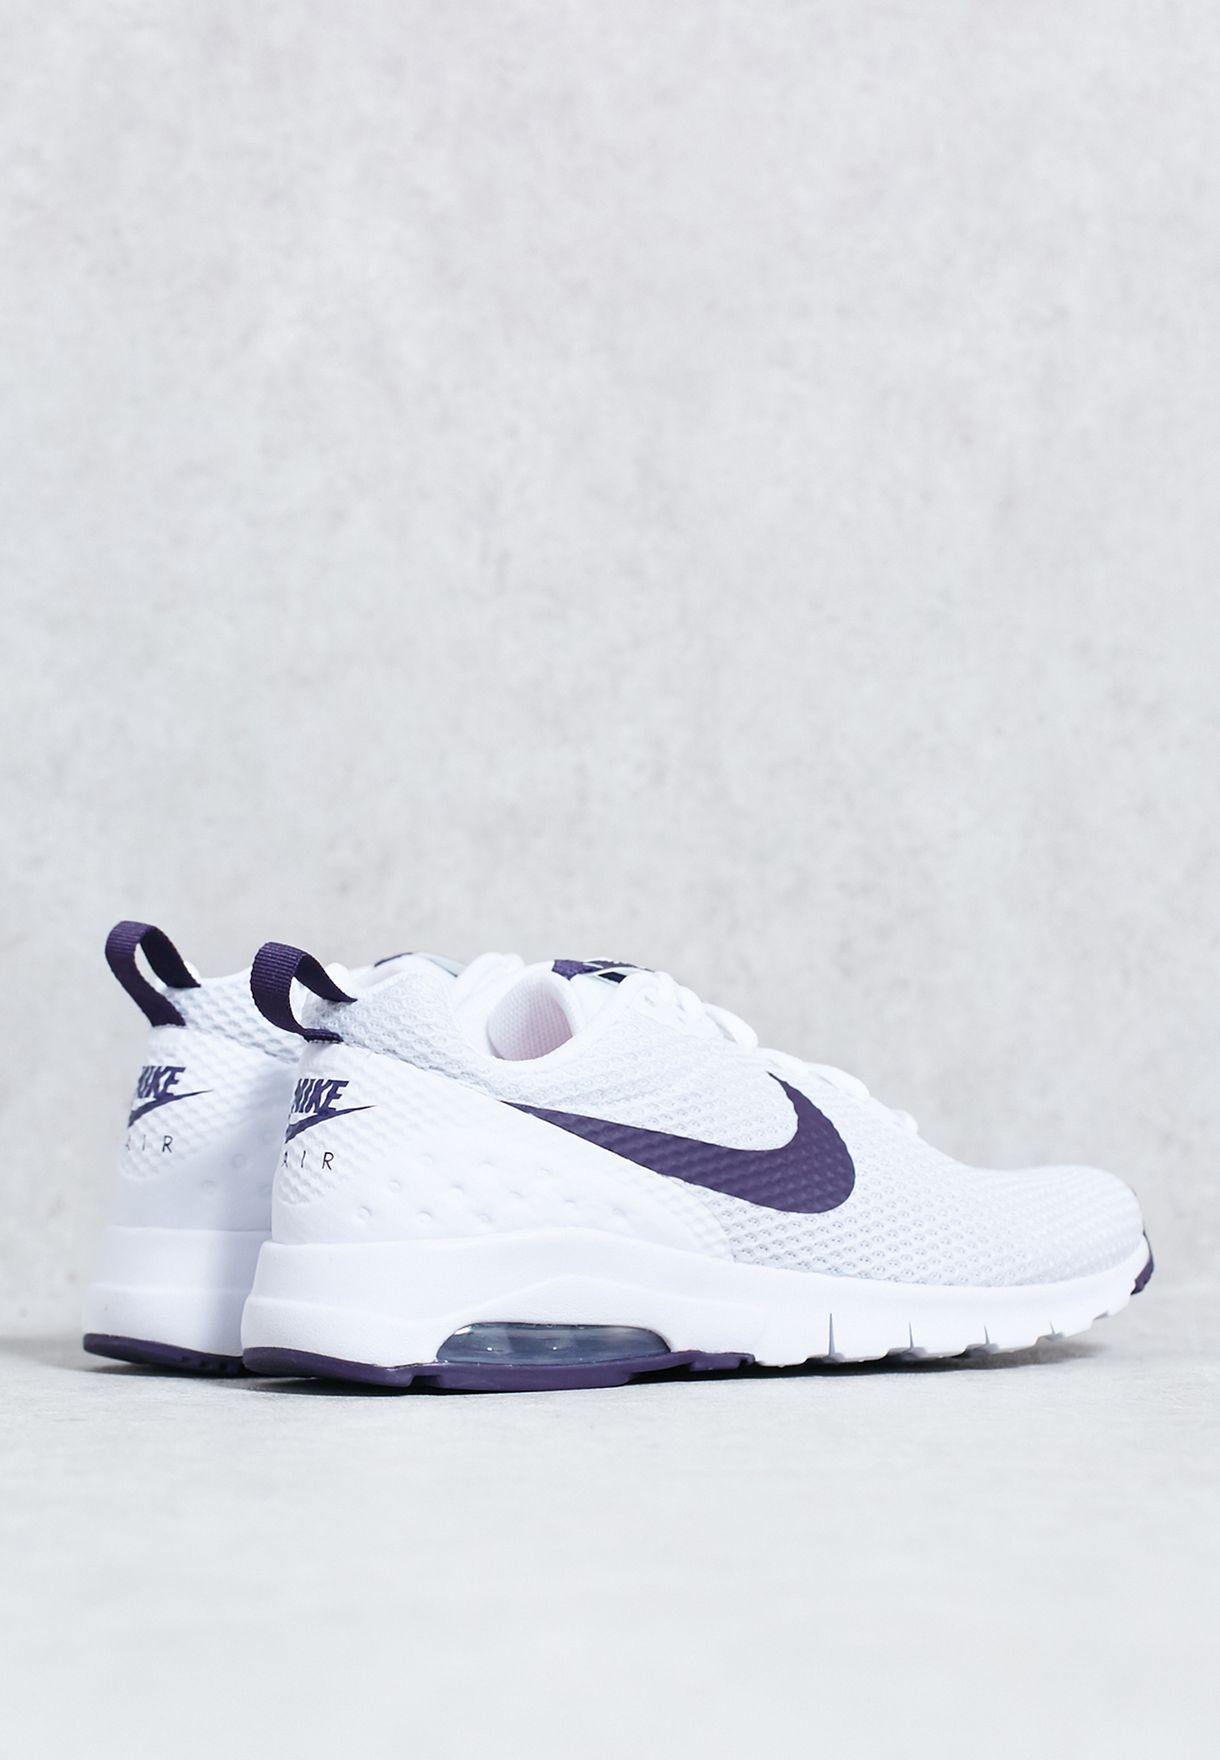 0f5afe5e45b6 Shop Nike white Air Max Motion LW SE 844895-100 for Women in ...